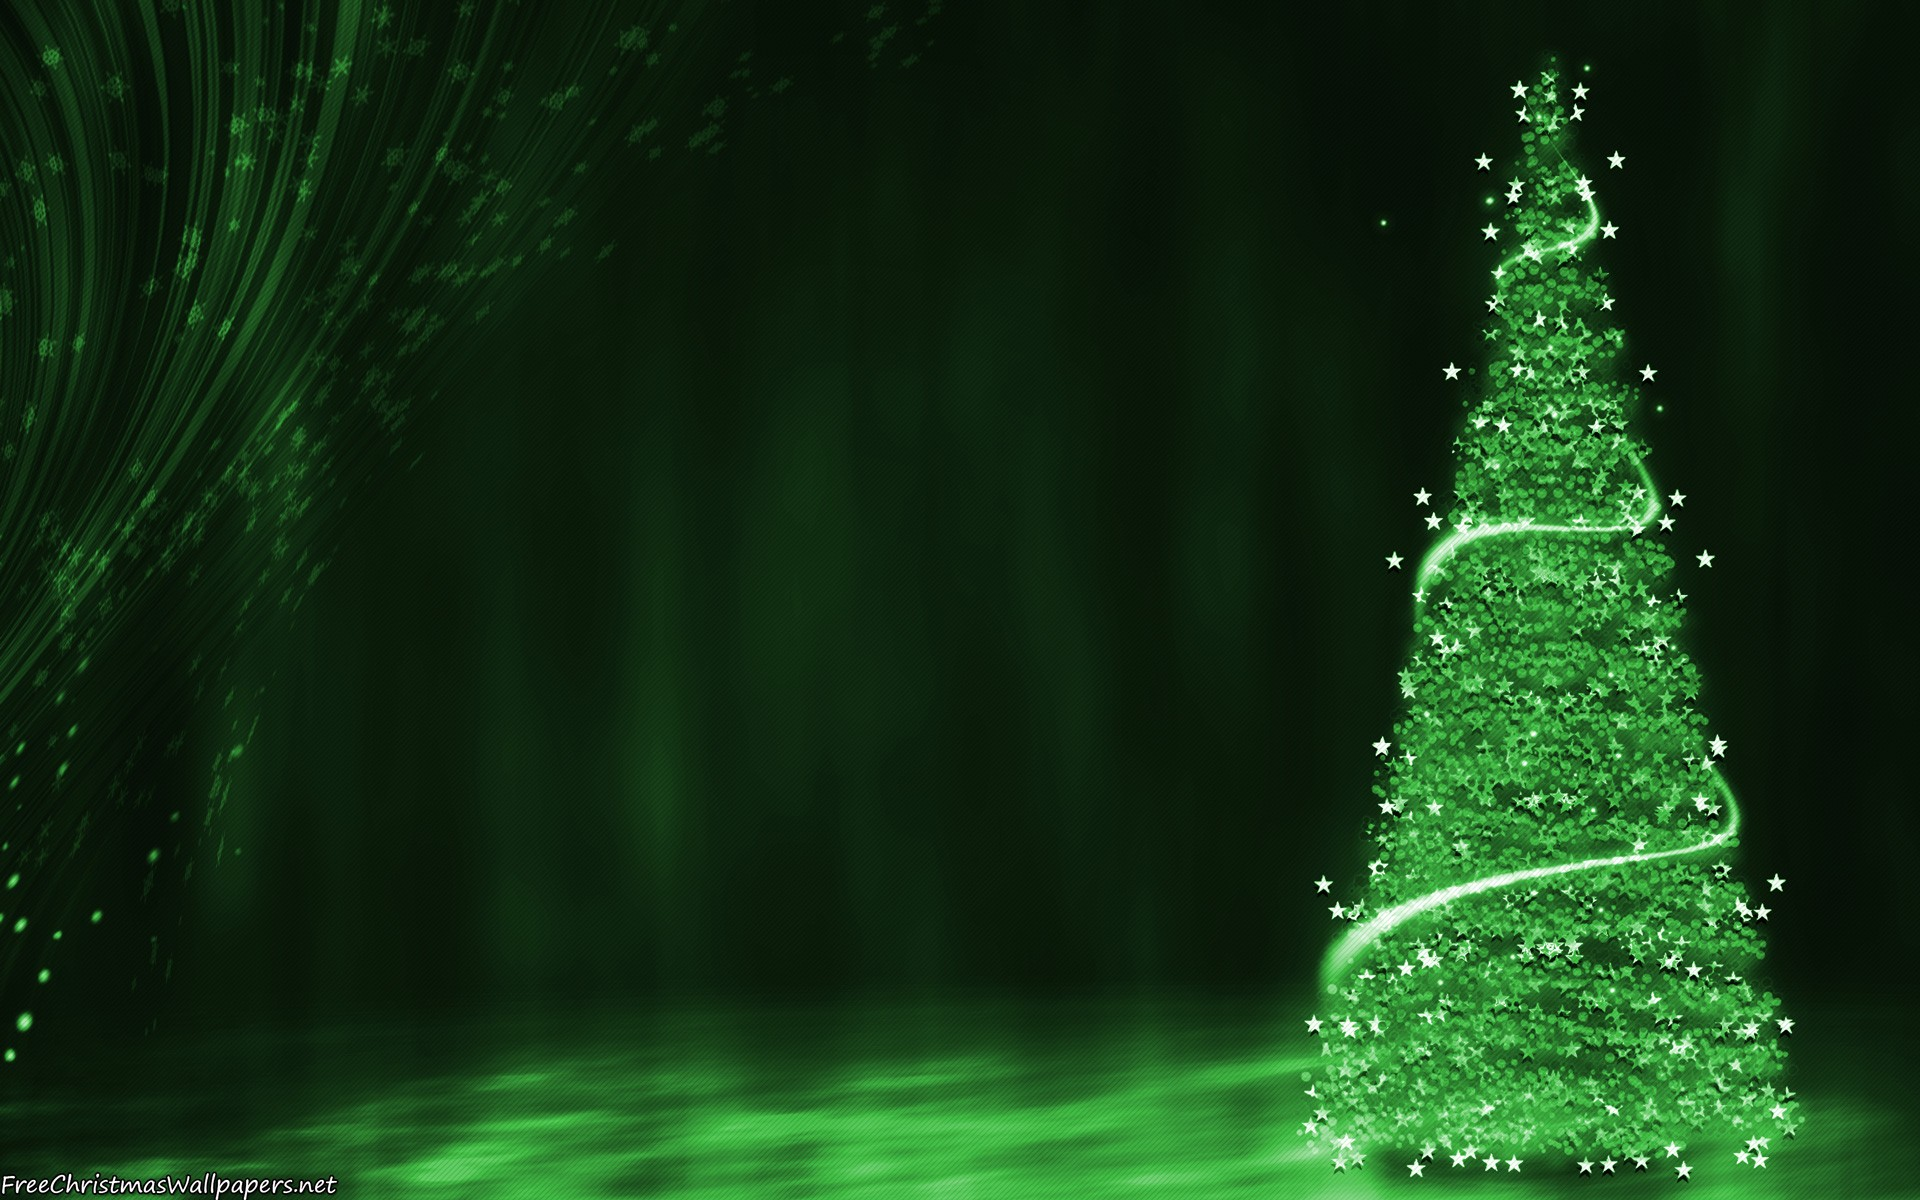 green christmas tree background - wallpaper